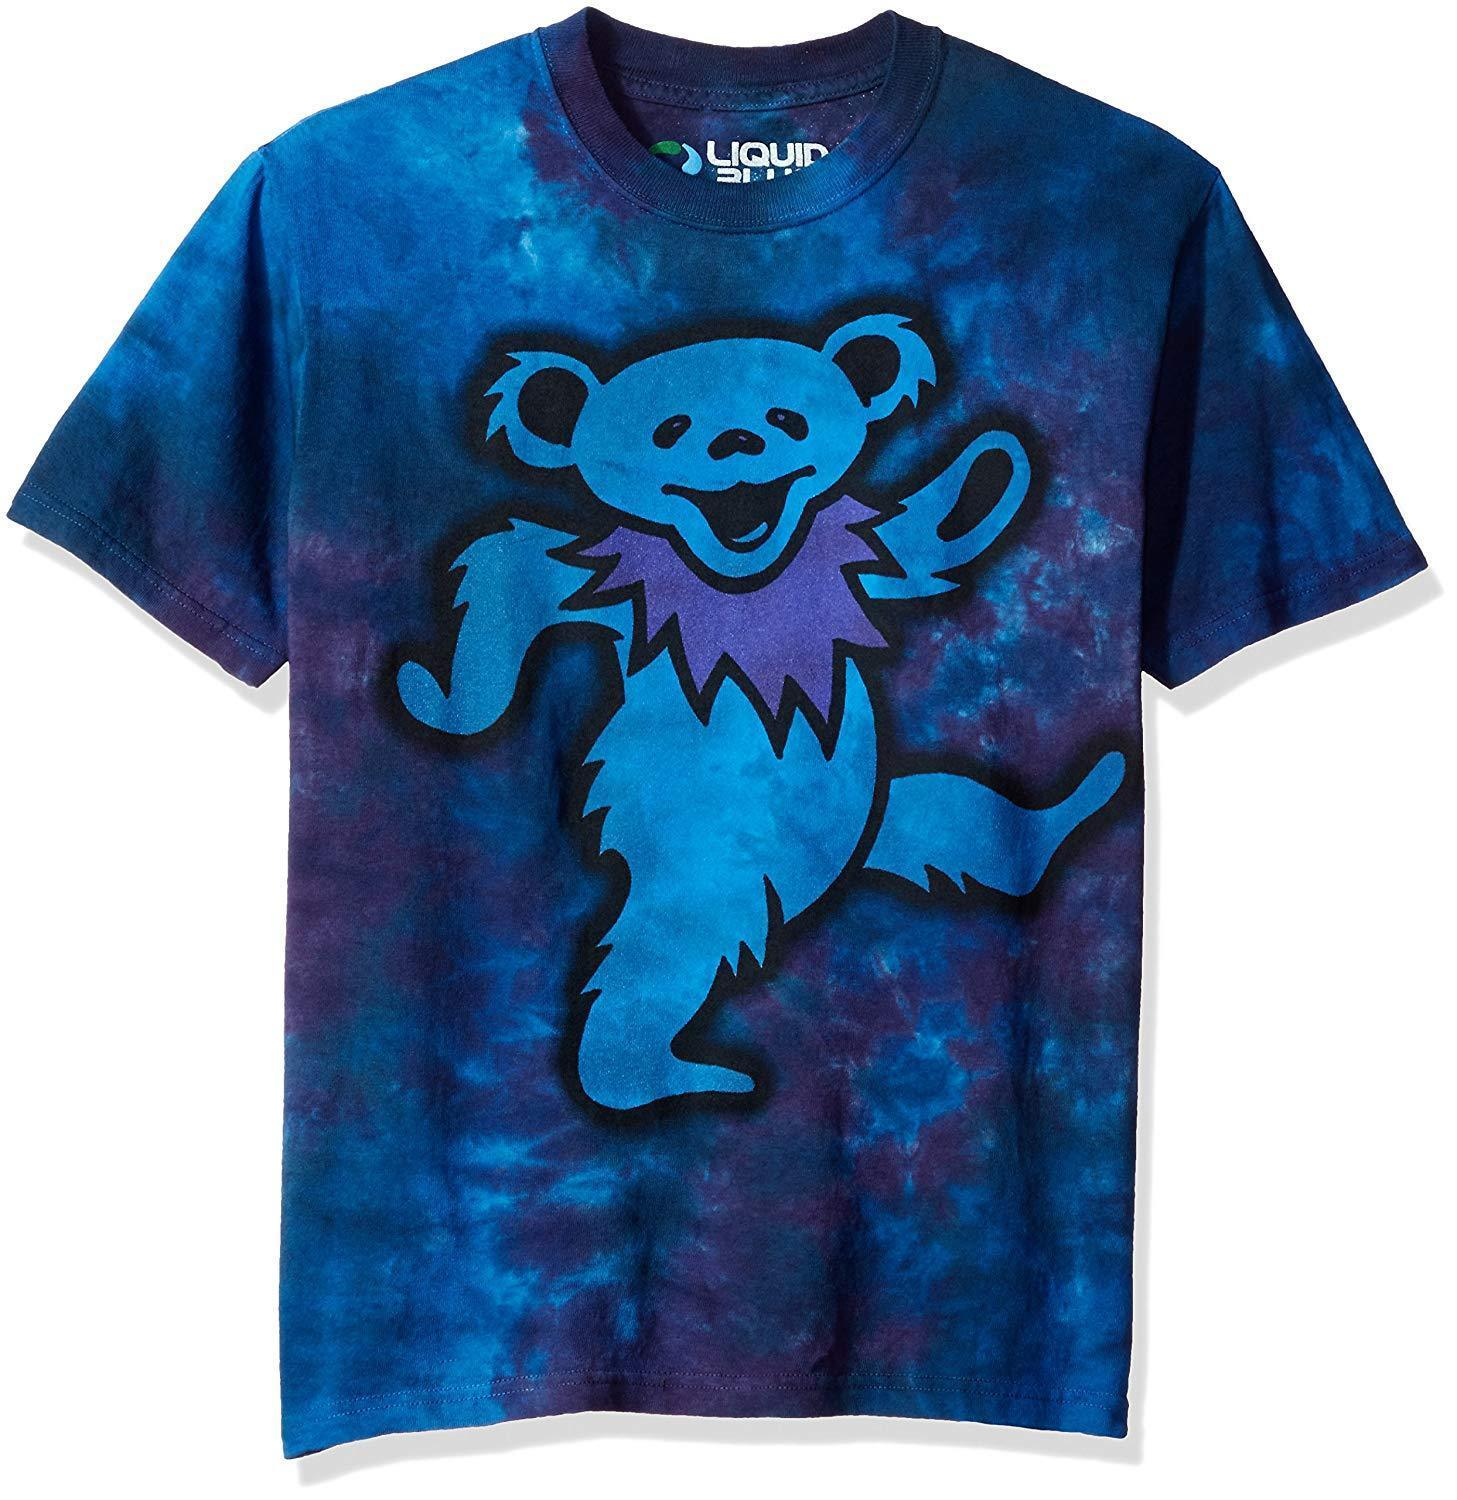 c050816a5f3 Licensed Grateful Dead - Big Bear Tie Dye T and 50 similar items